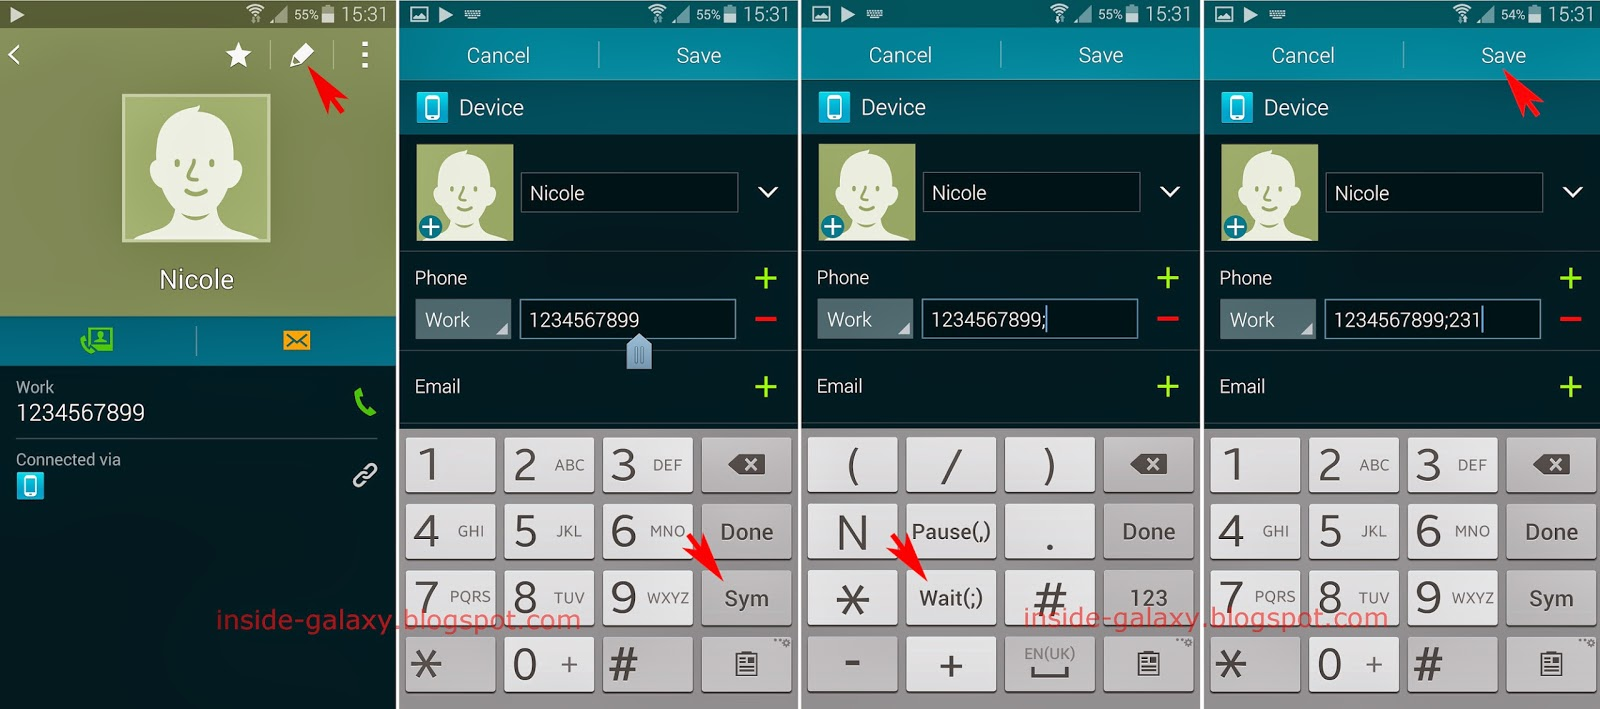 How To Block A Number Galaxy S5 By Robert Anwood How To Add A Wait Into A  Contact? As The Example, Say That You